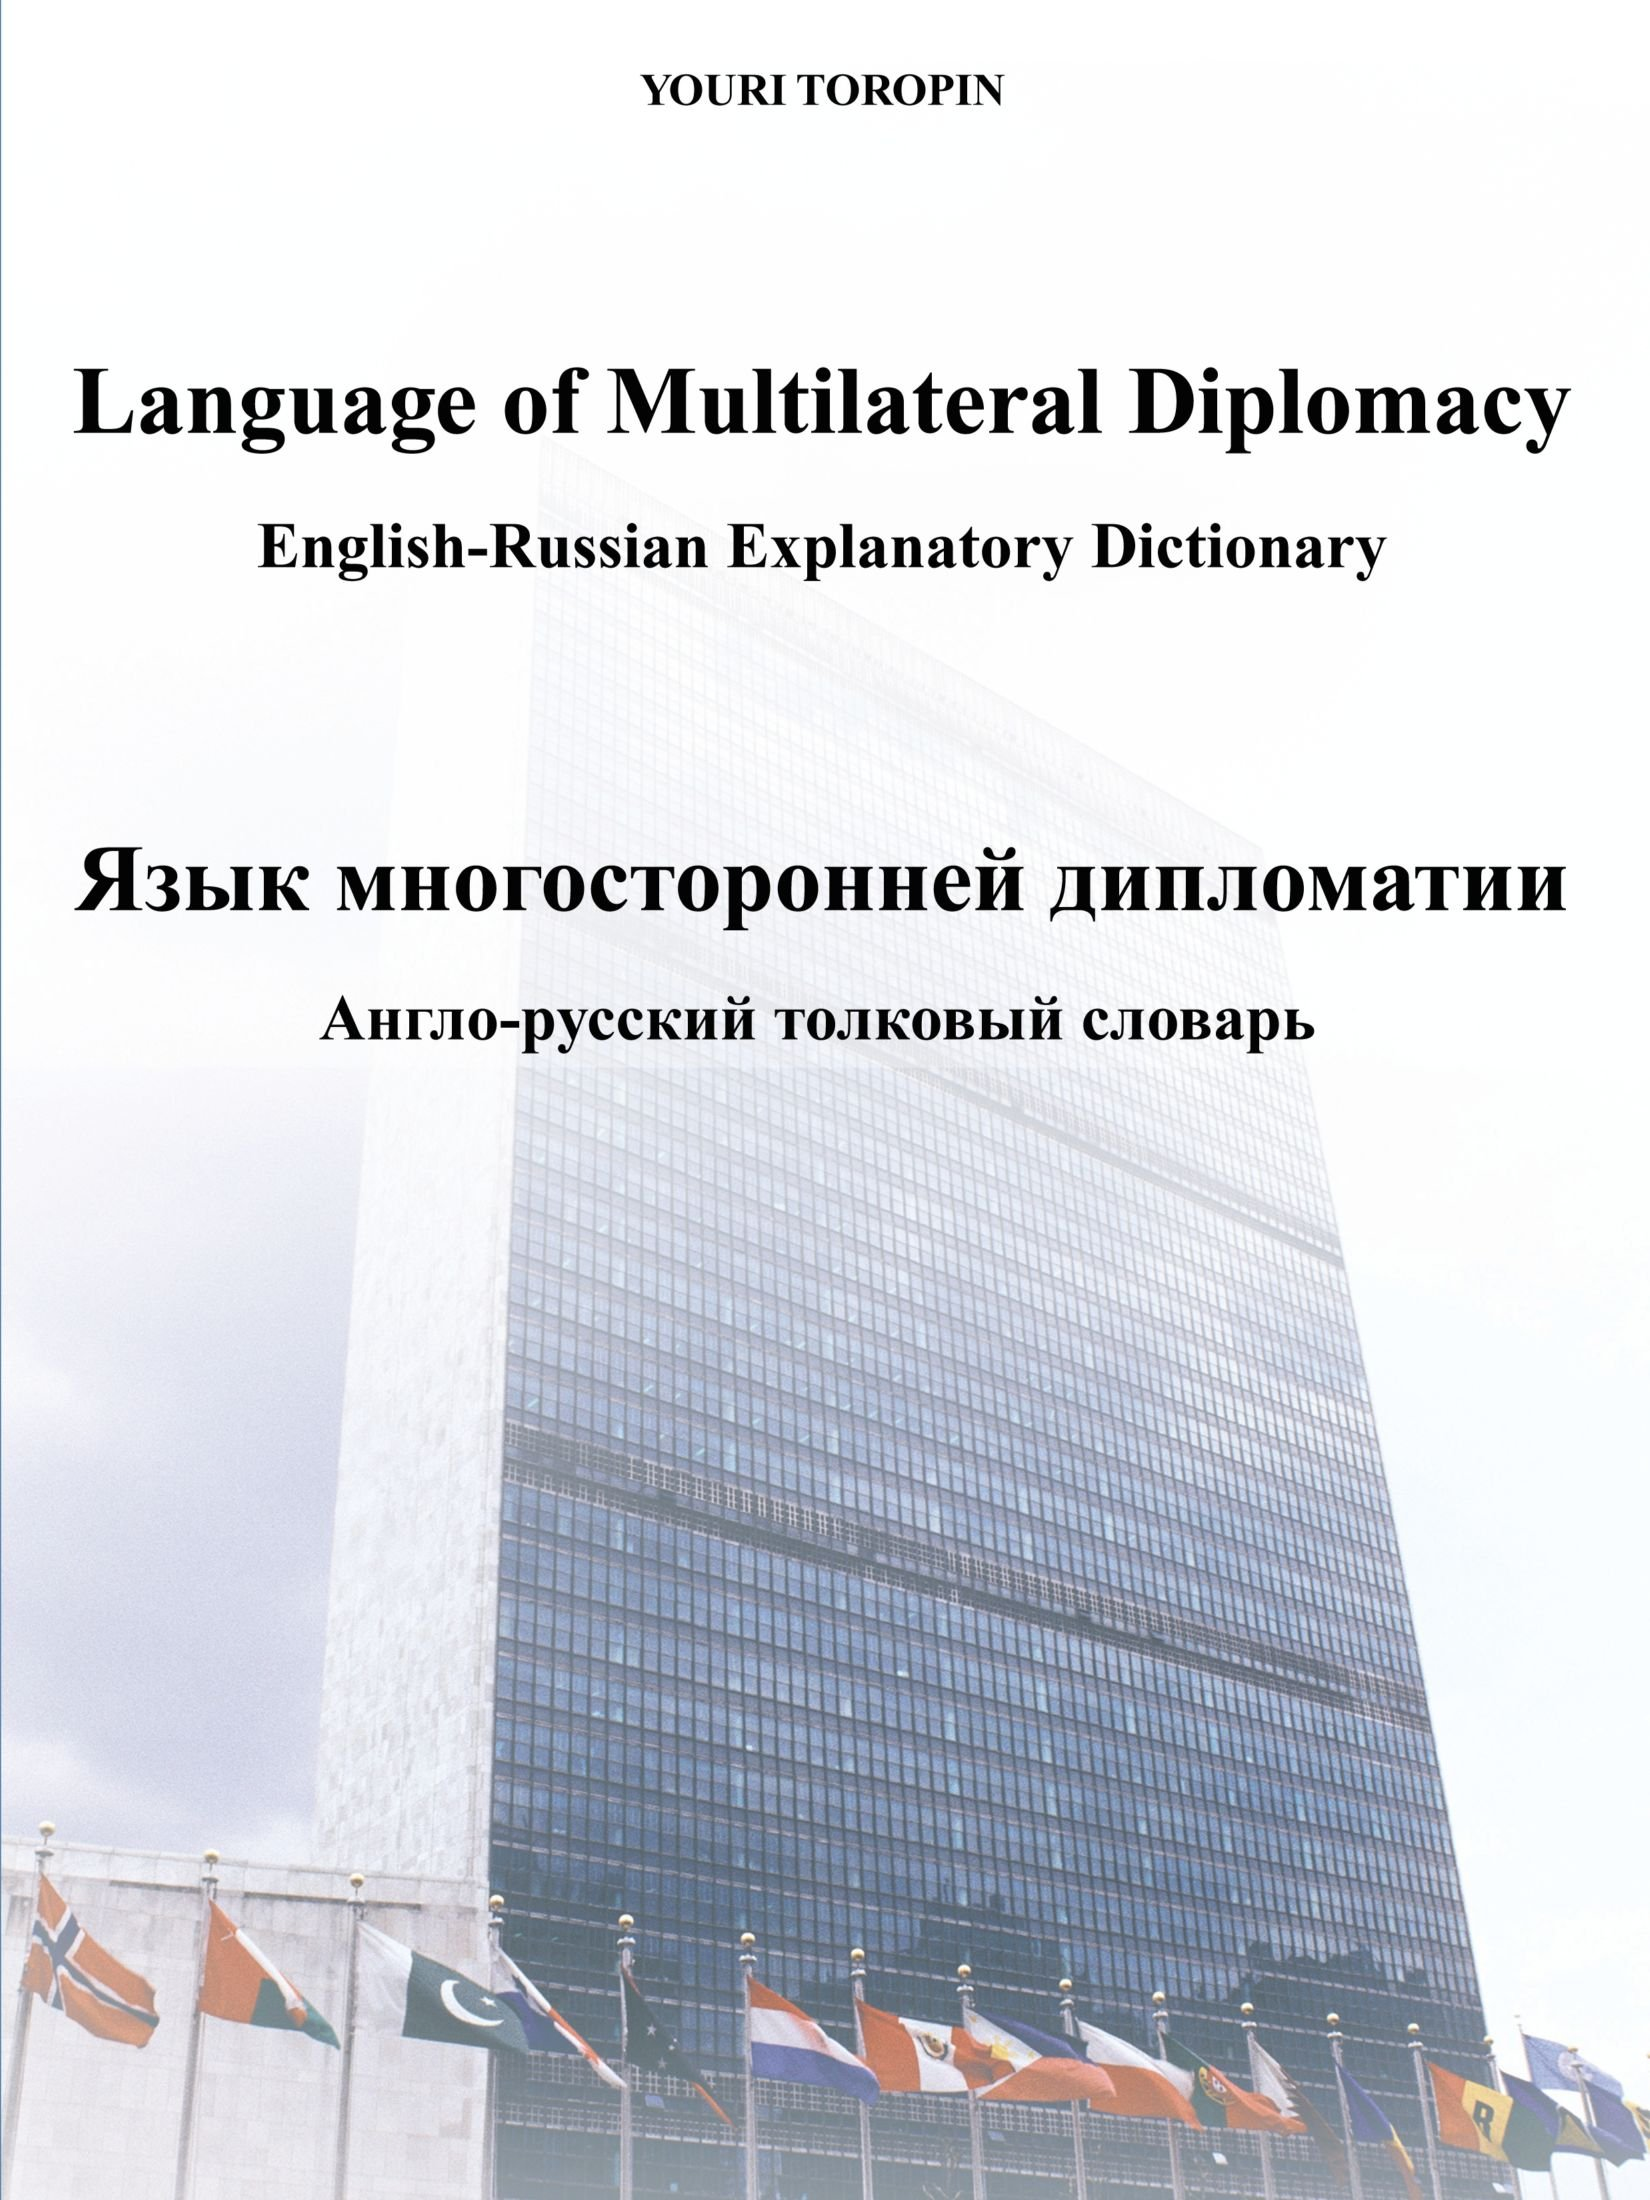 Language of Multilateral Diplomacy: English-Russian Explanatory Dictionary (Russian Edition)